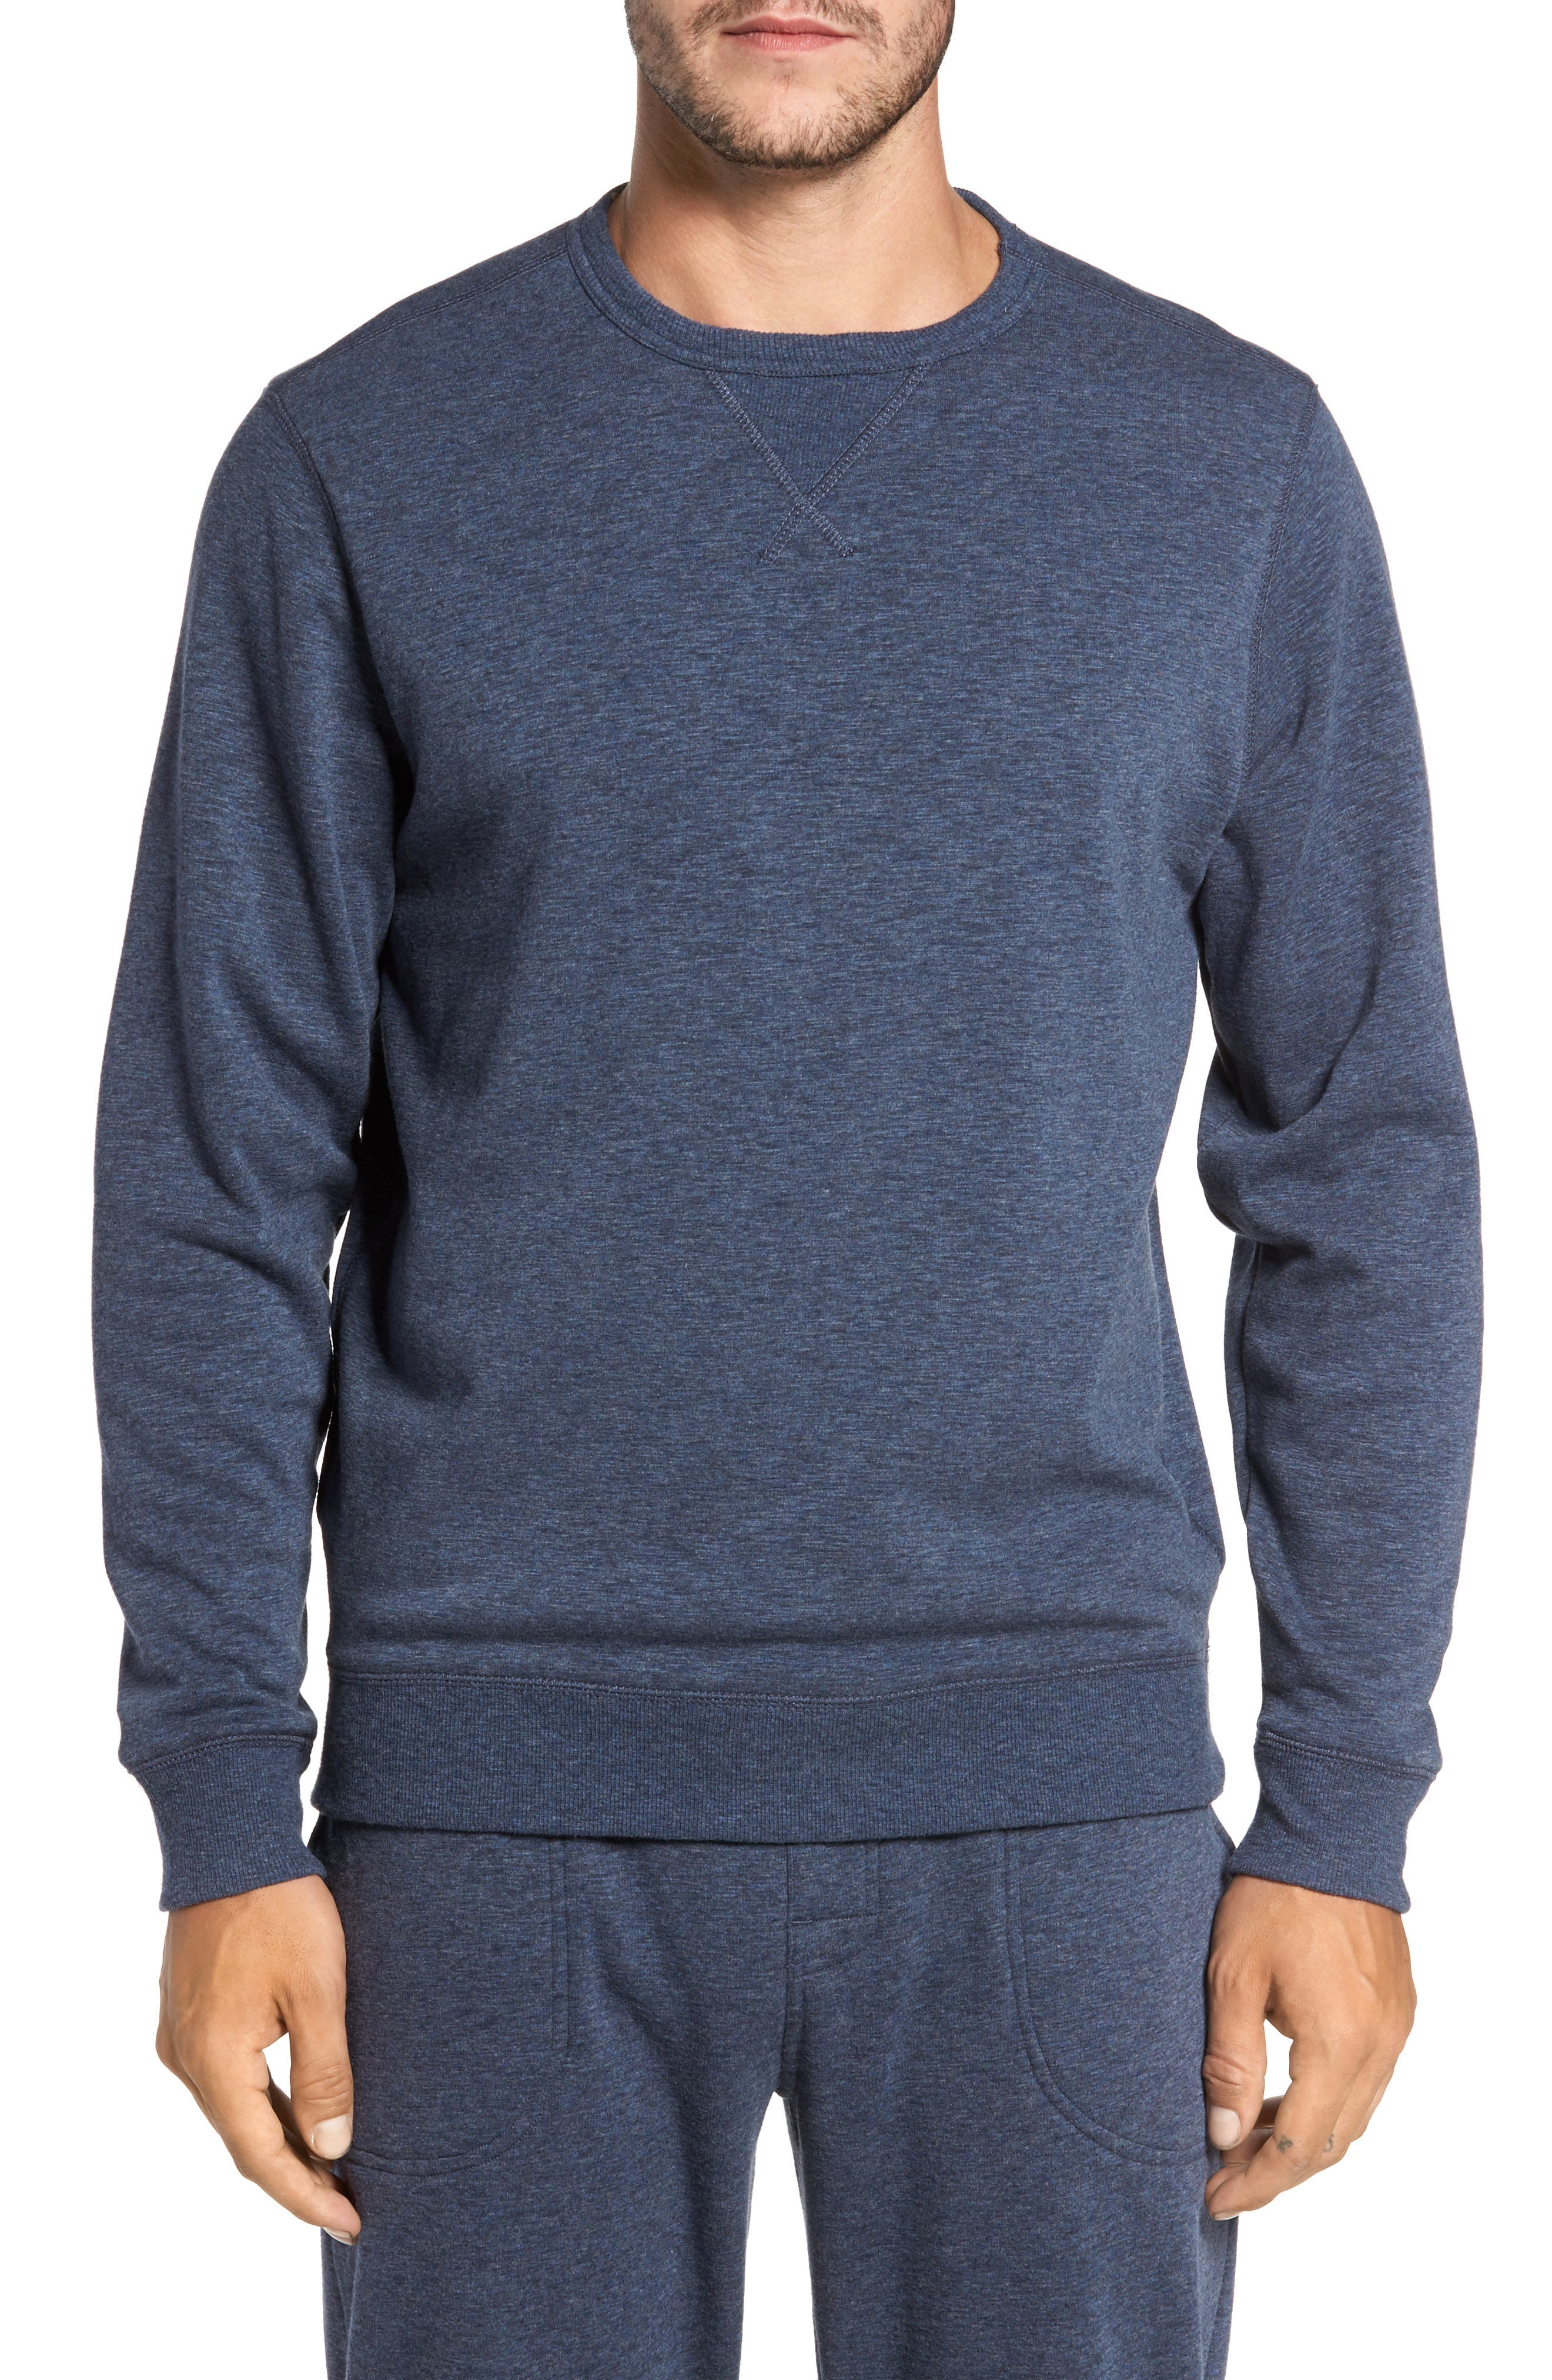 Alternate Image 1 Selected - Nordstrom Men's Shop French Terry Long Sleeve Pajama Top